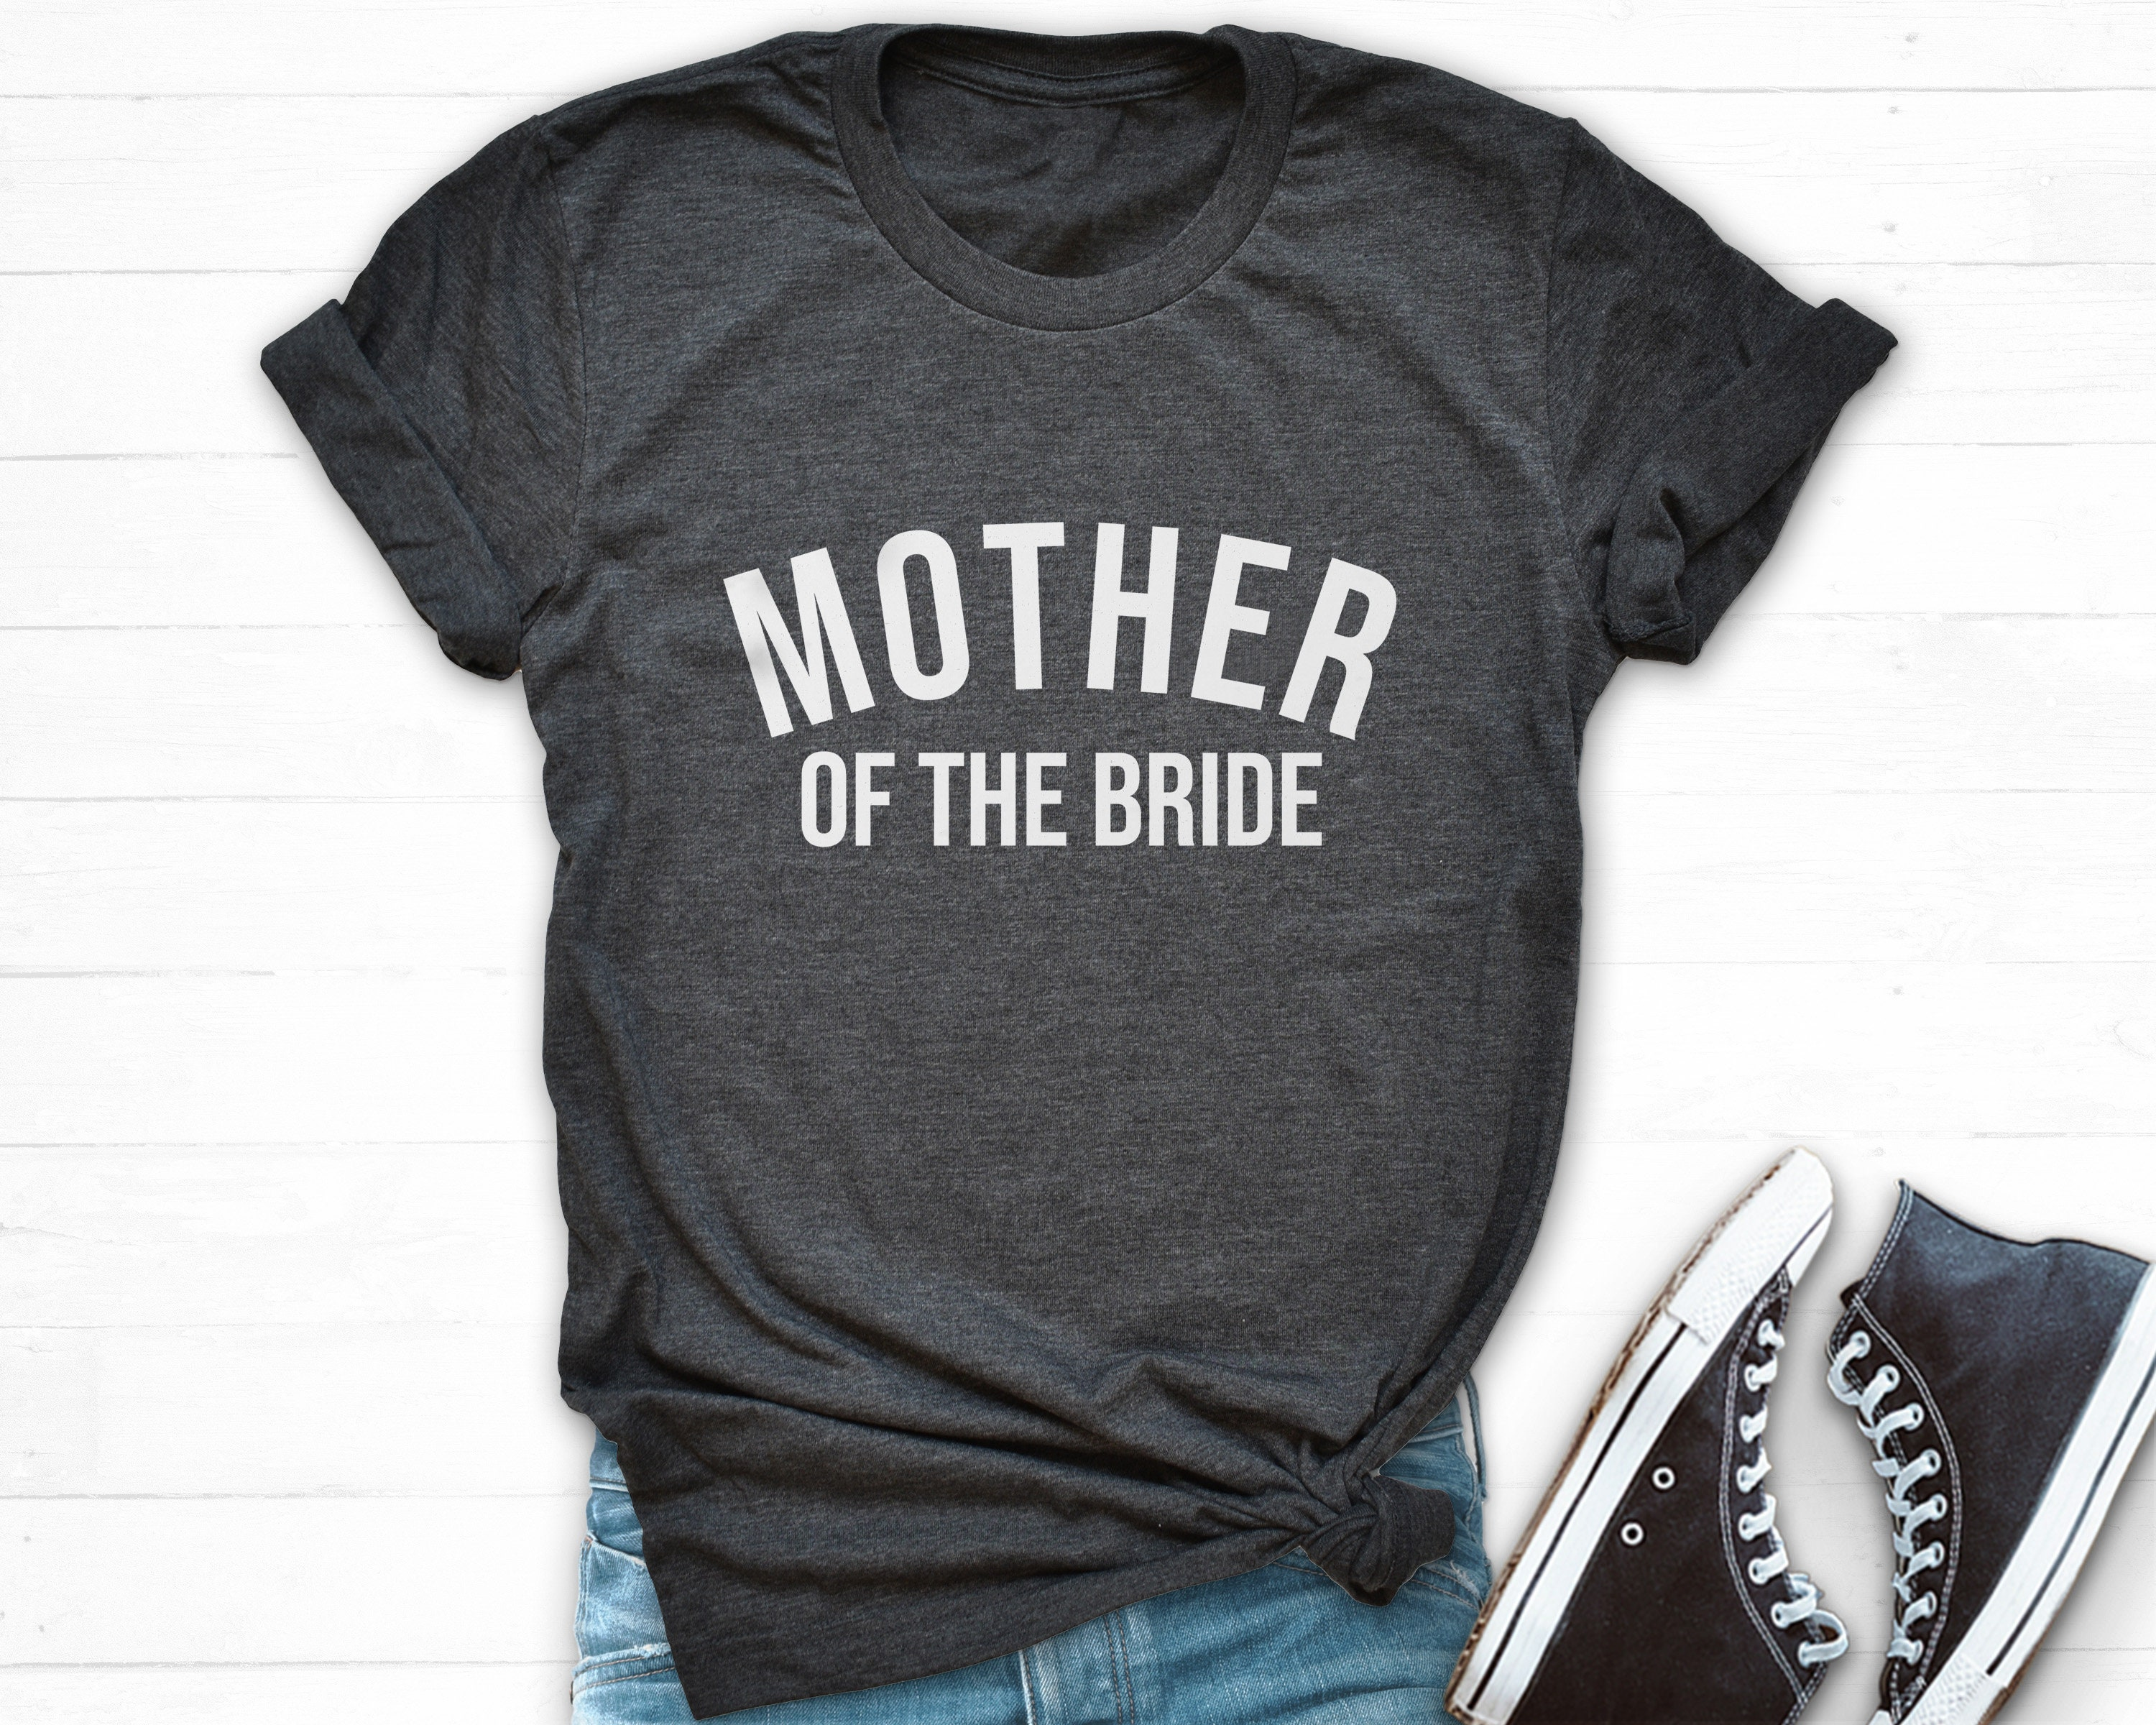 d3d1ab95f Mother of The Bride T Shirt Brides Mom Shirt Mother Bride | Etsy